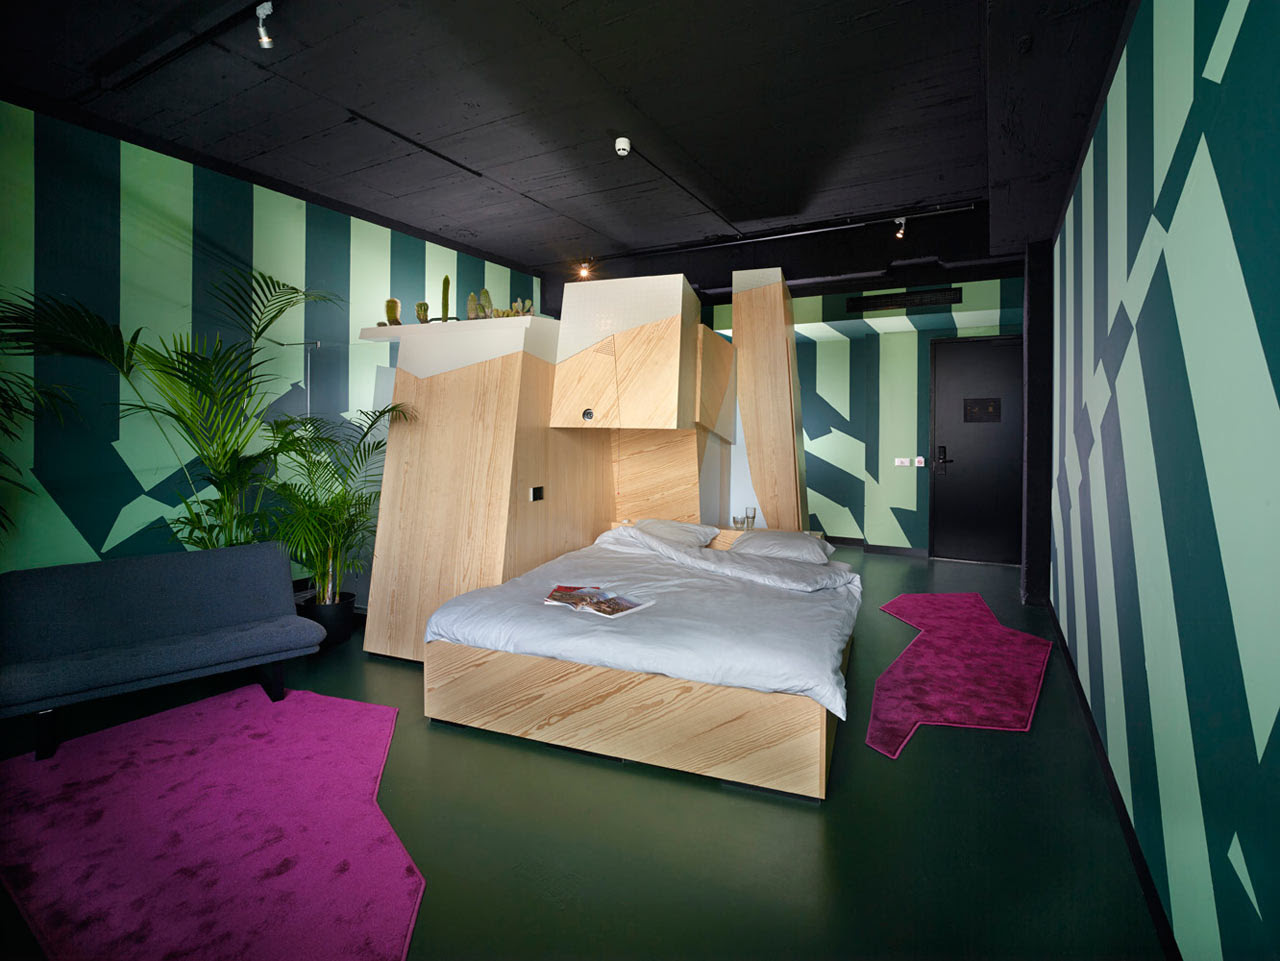 A One-of-a-Kind Hotel Room at Volkshotel Amsterdam